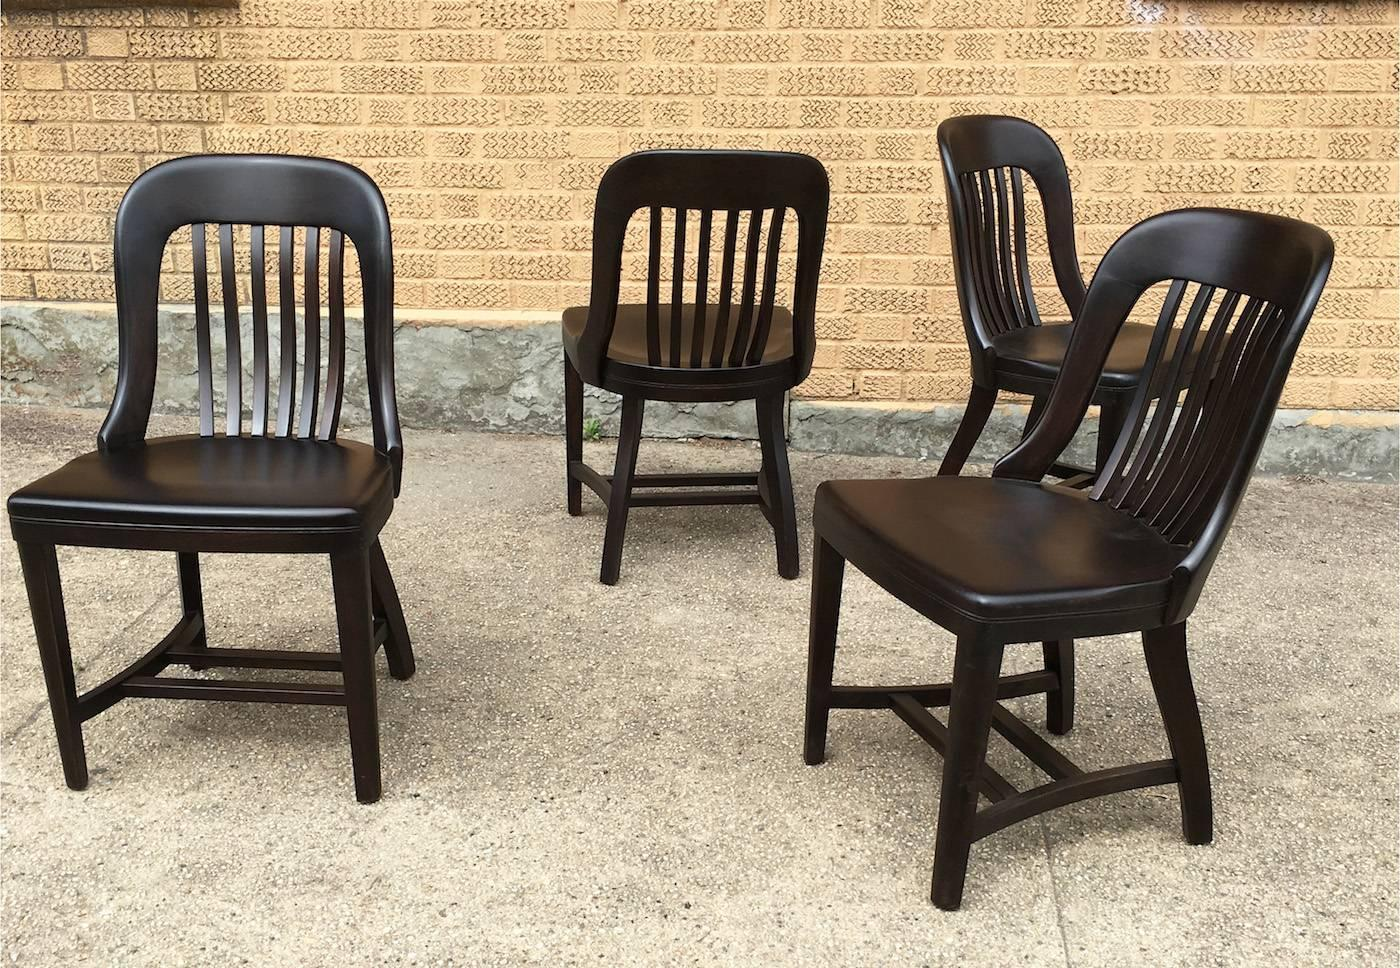 sikes chair company executive computer pair of ebonized gunlocke bank england side chairs for